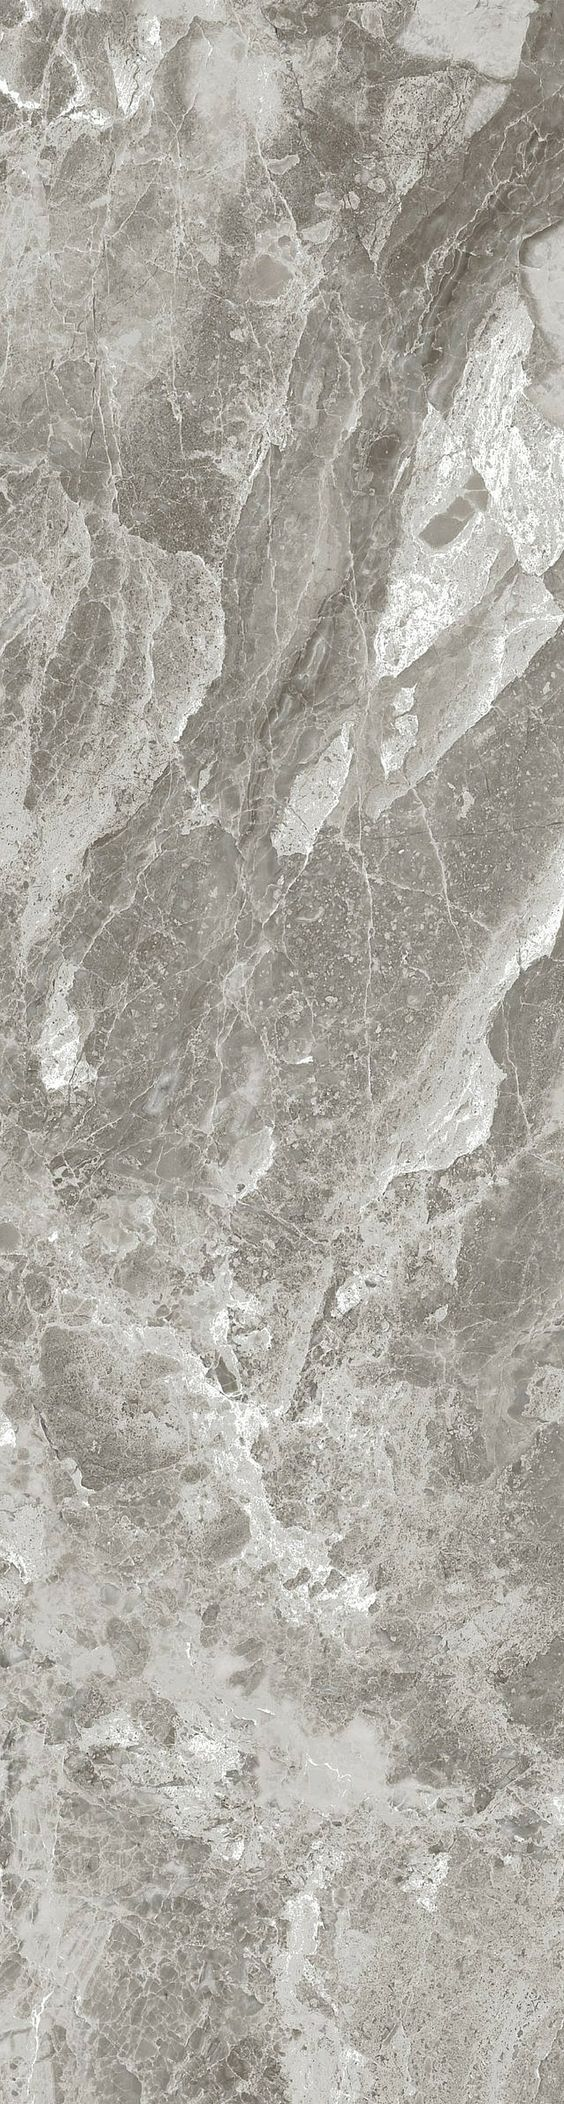 Porcelain Tile | Marble Look Classic Bardiglietto…::